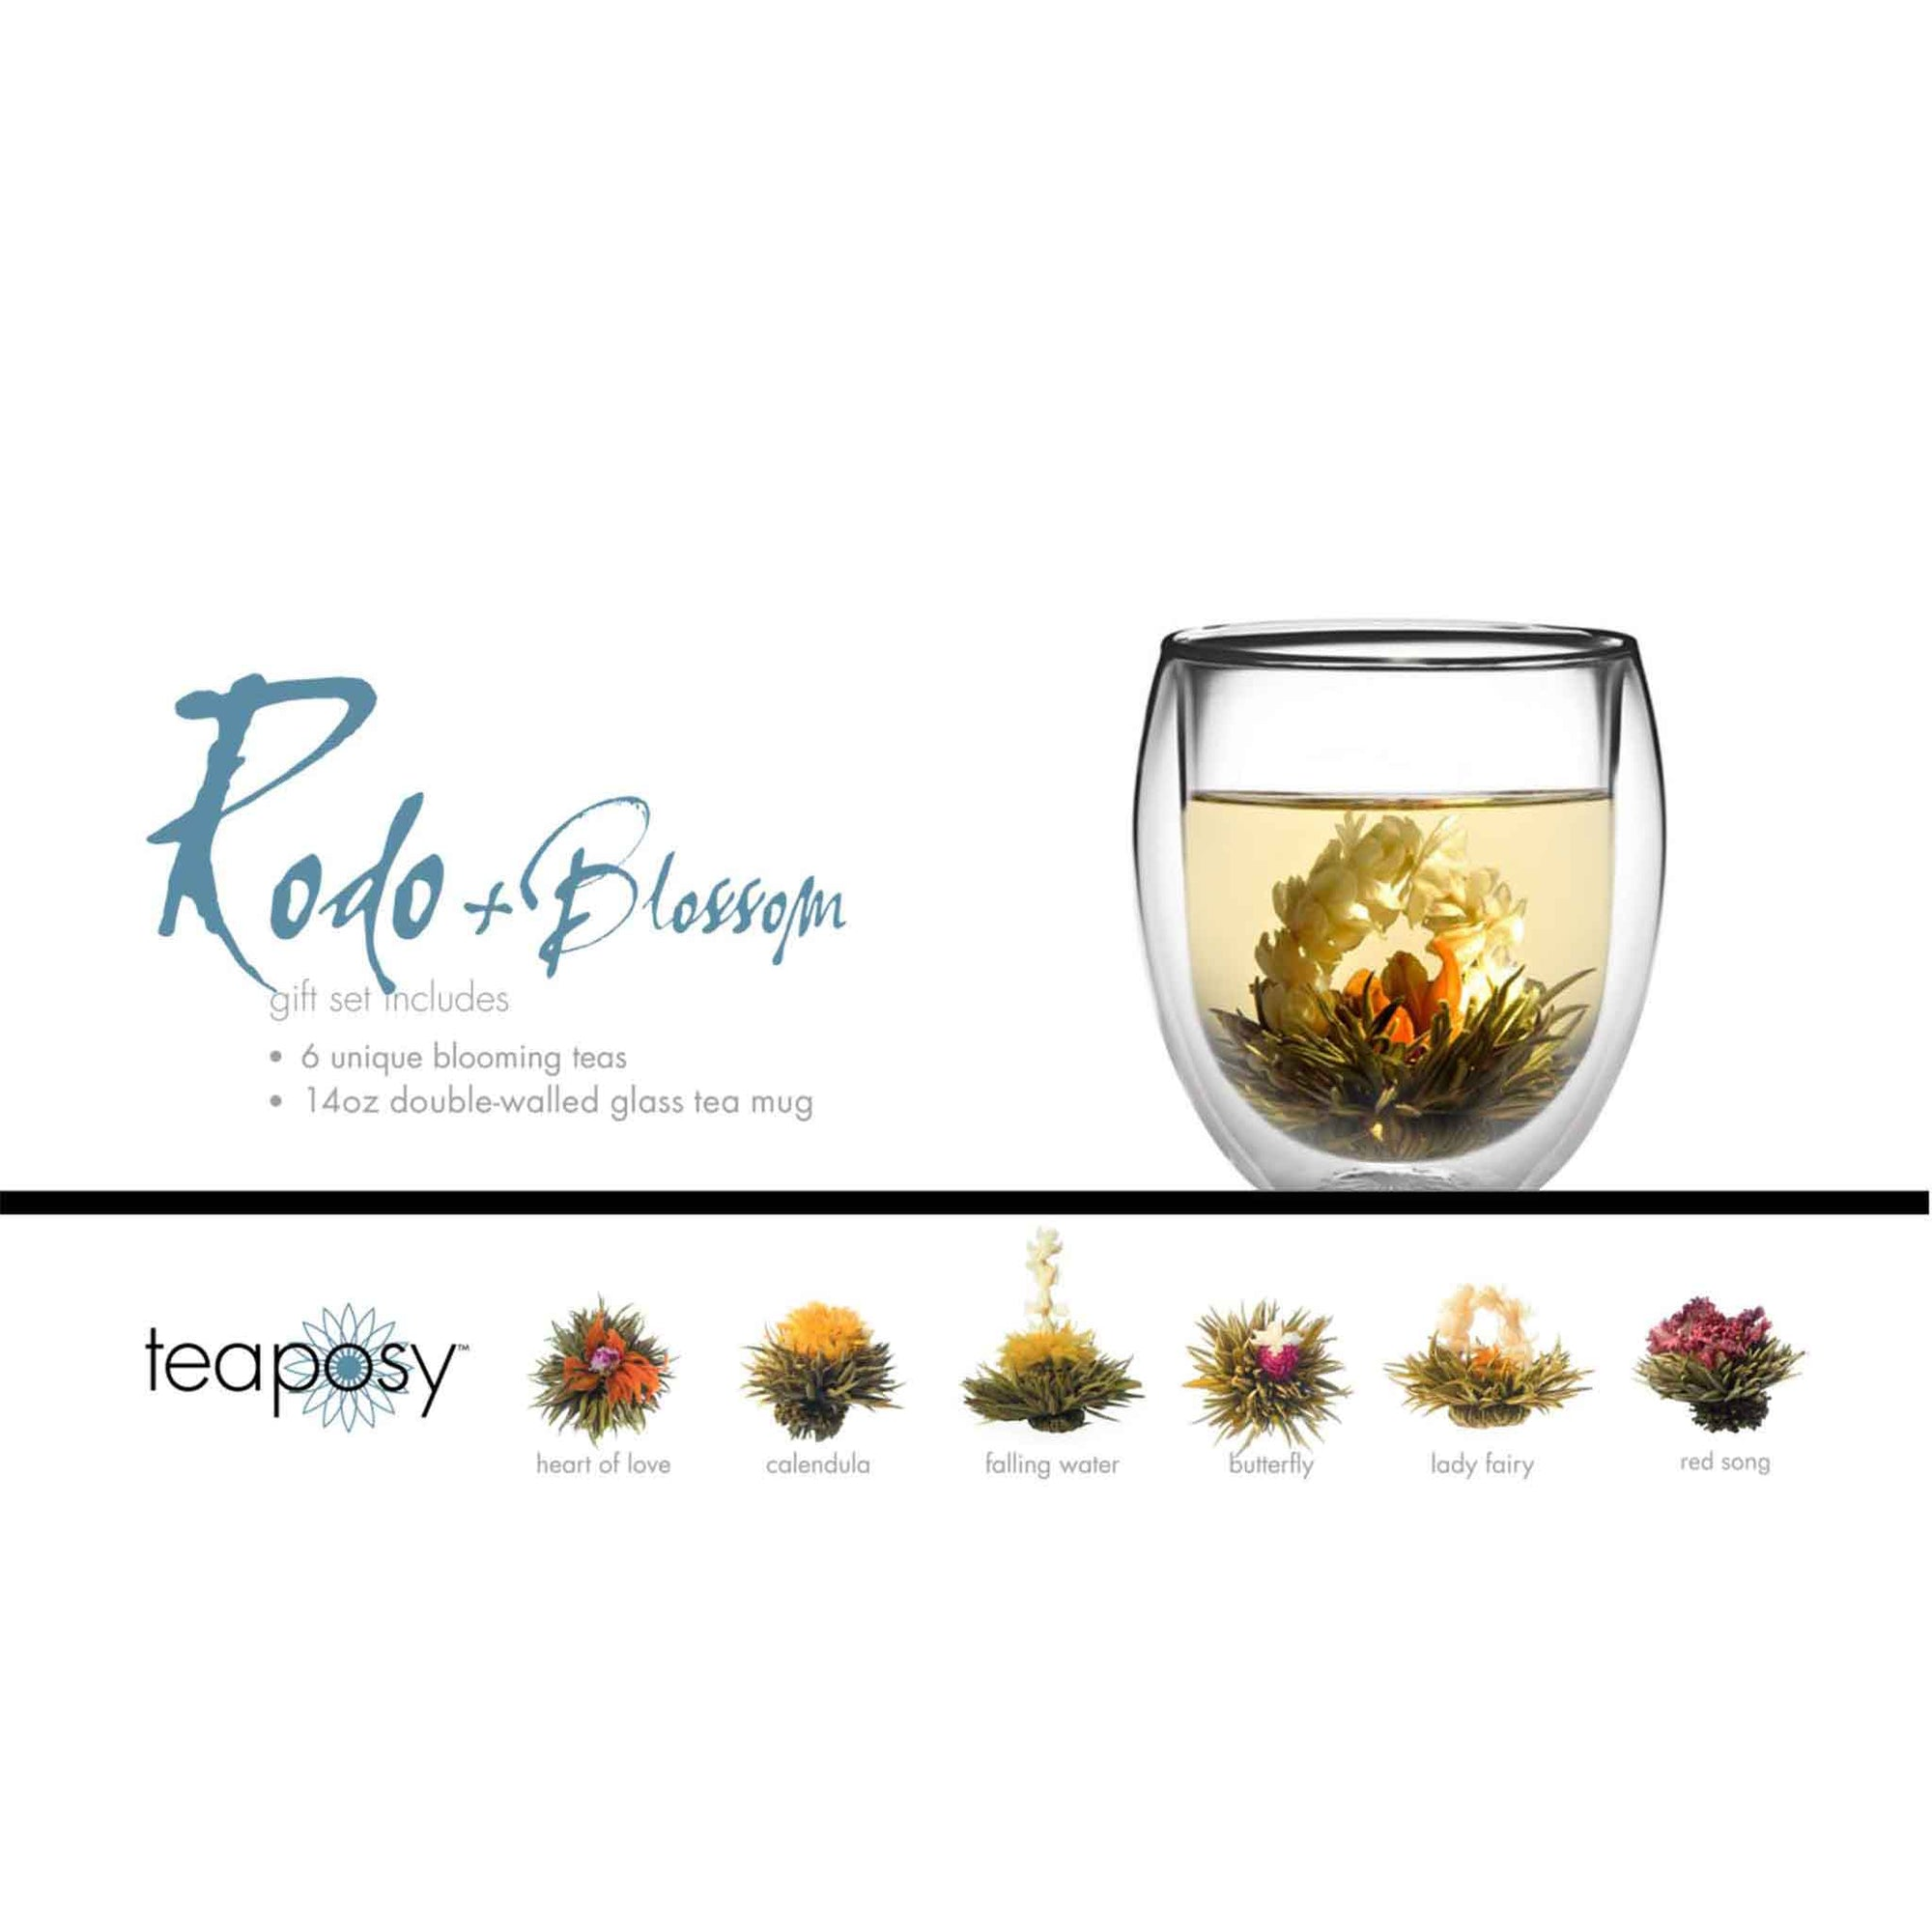 Teaposy rondo posy gift set, showing 6 unique blooming teas, and a double-walled rondo glass tea mug